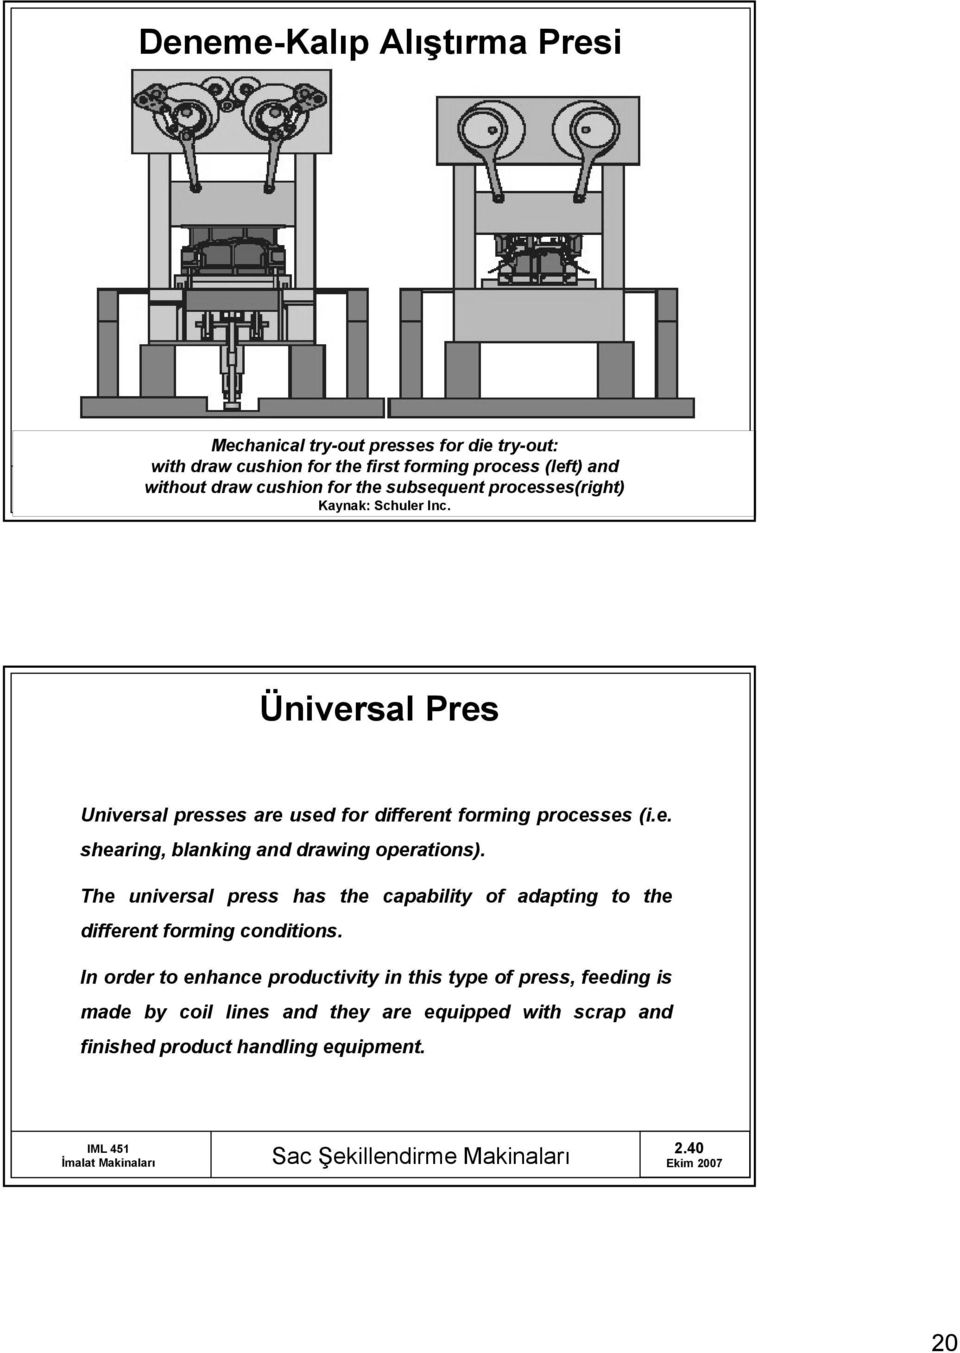 The universal press has the capability of adapting to the different forming conditions.